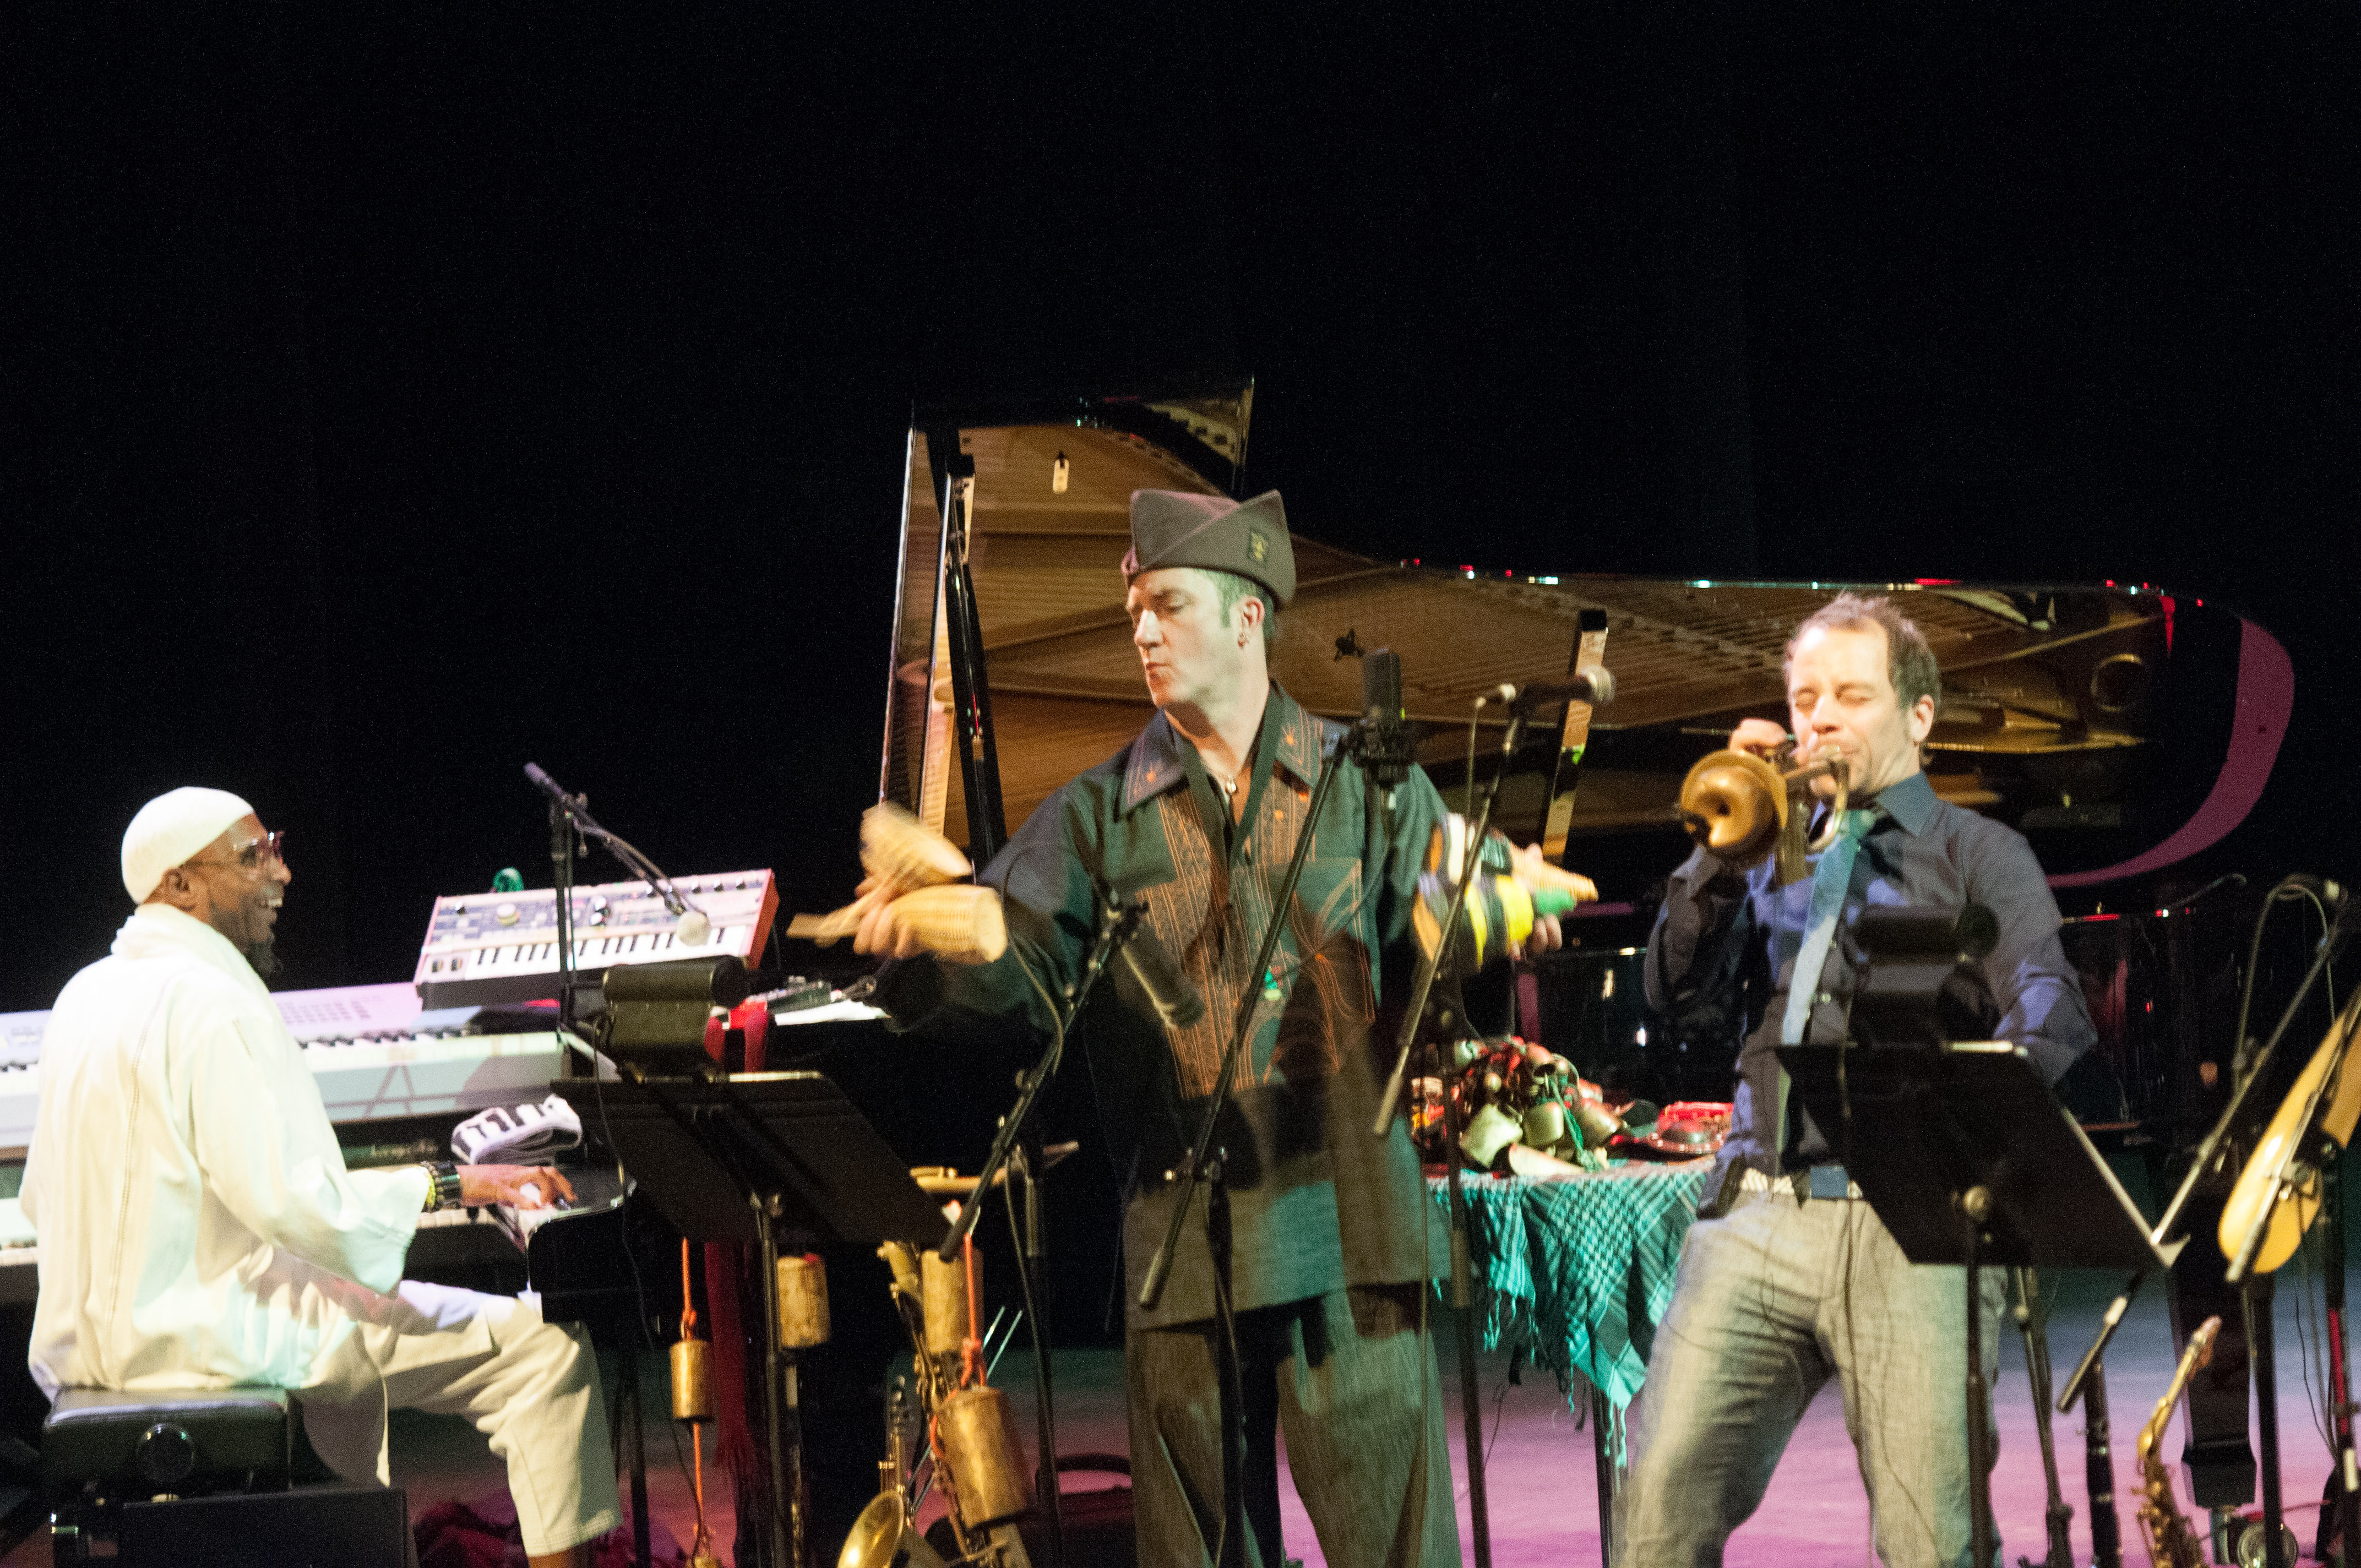 Omar sosa, peter apfelbaum and joo kraus and the afri-lectric experience at the tempe arts center